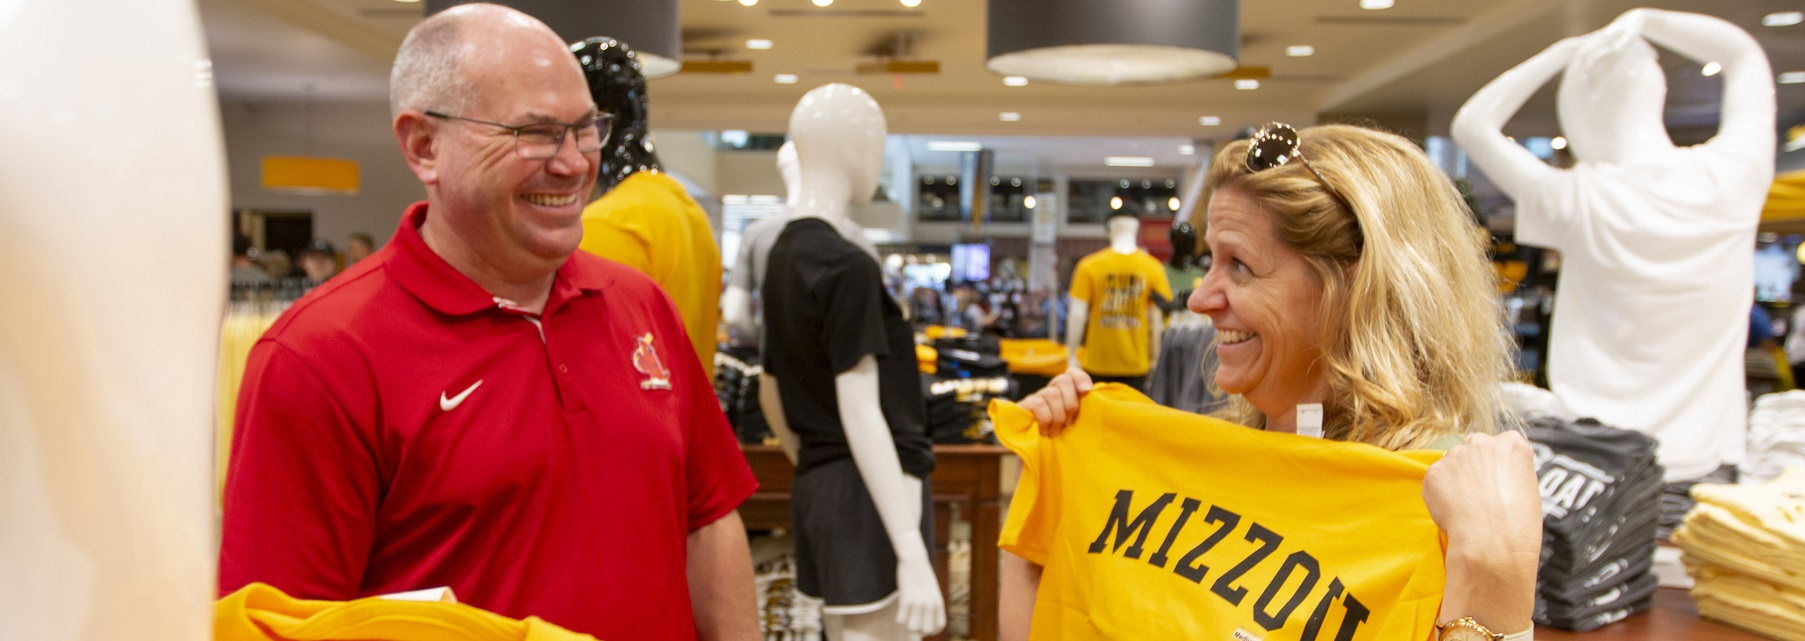 Parents shopping at The Mizzou Store.